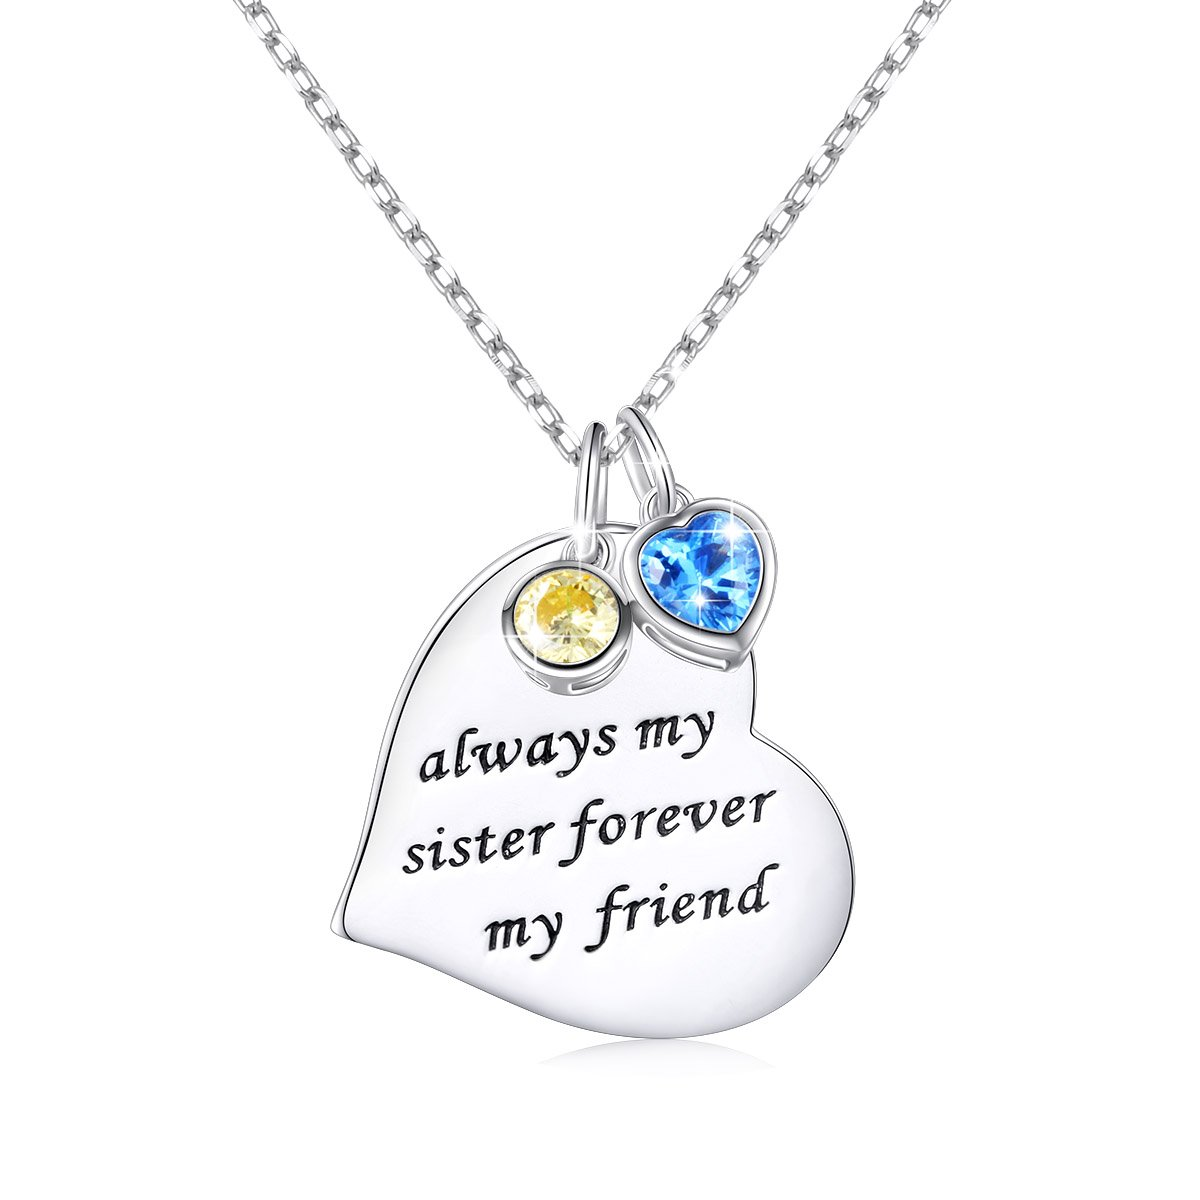 Graduation Gift 925 Sterling Silver Engraved Always My Sister Forever My Friend Love Heart Pendant Necklace for Women, Rolo Chain 18 inch